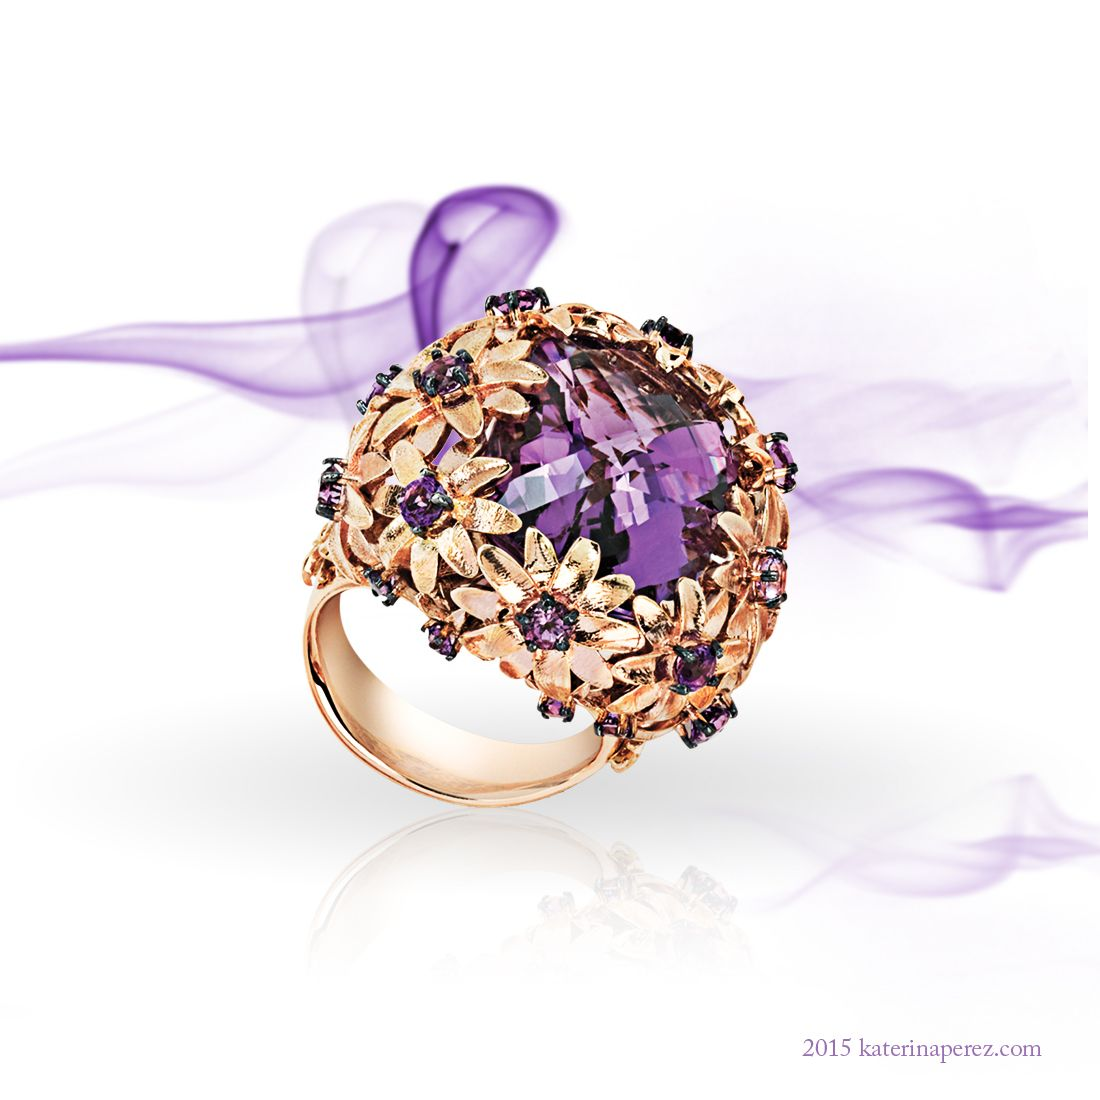 Roberto Coin rose gold ring with an amethyst from the Haute Couture collection